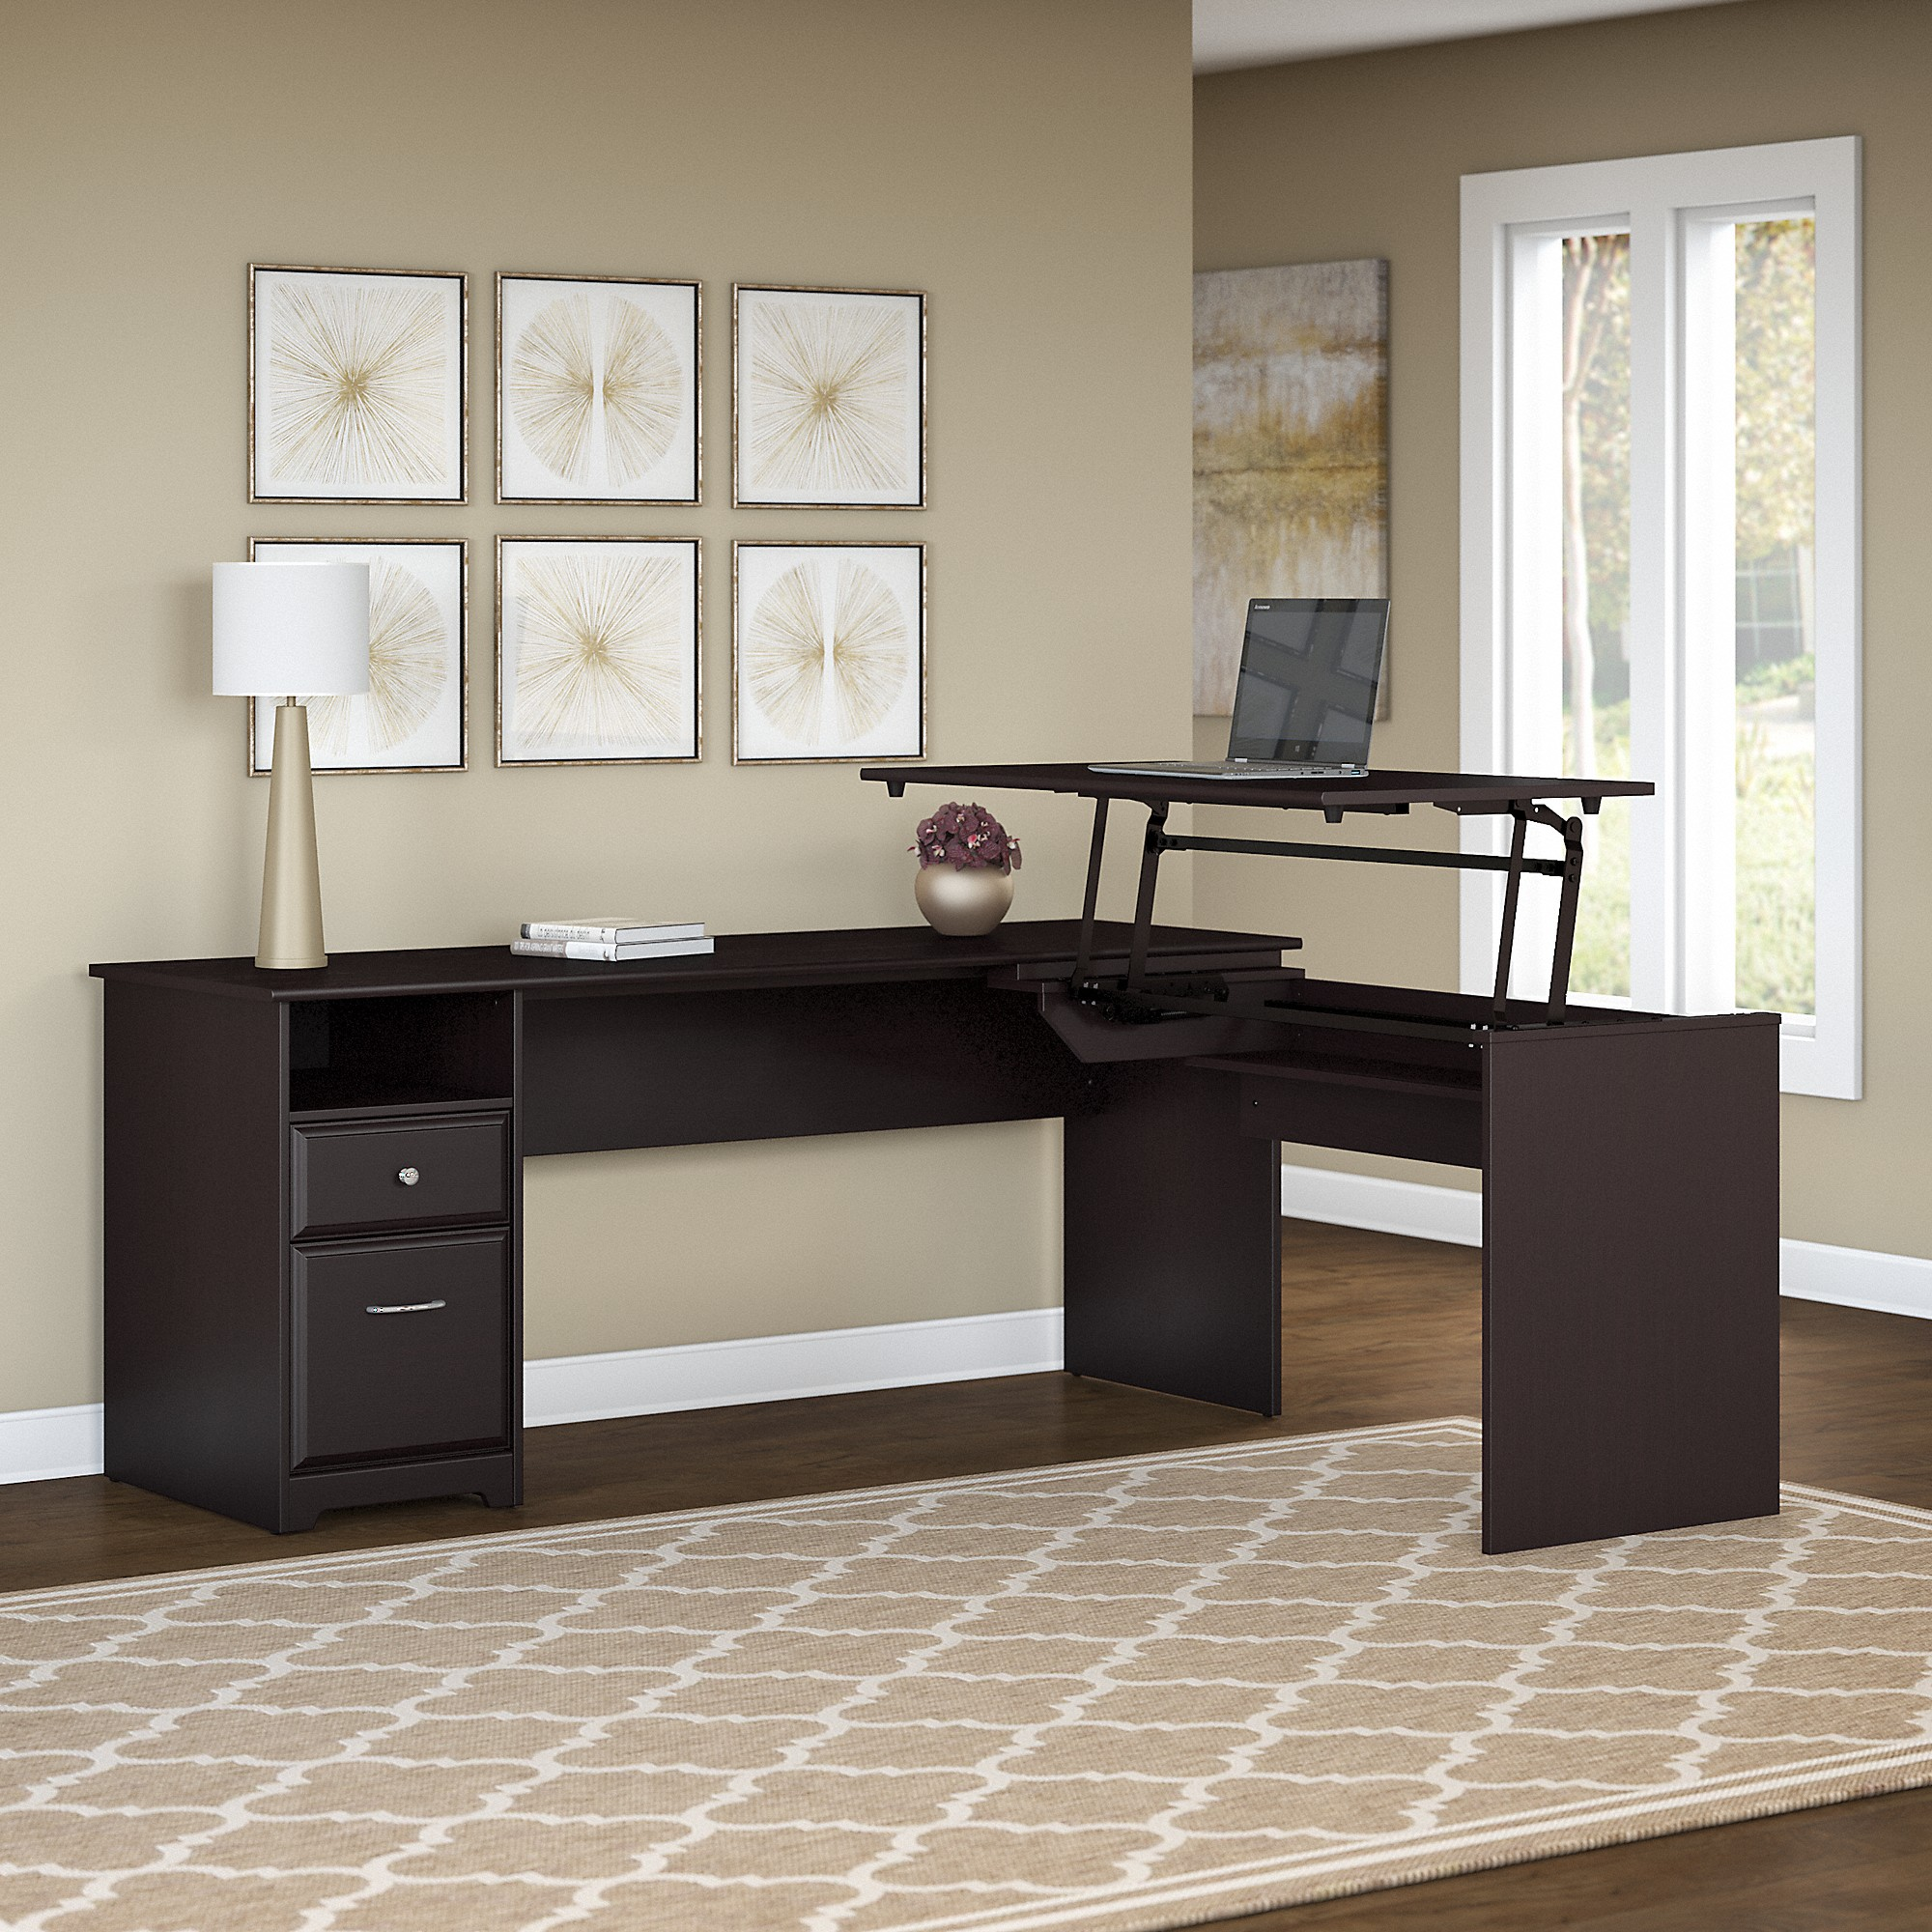 Bush Furniture Cabot 72W 3 Position L Shaped Sit to Stand Desk